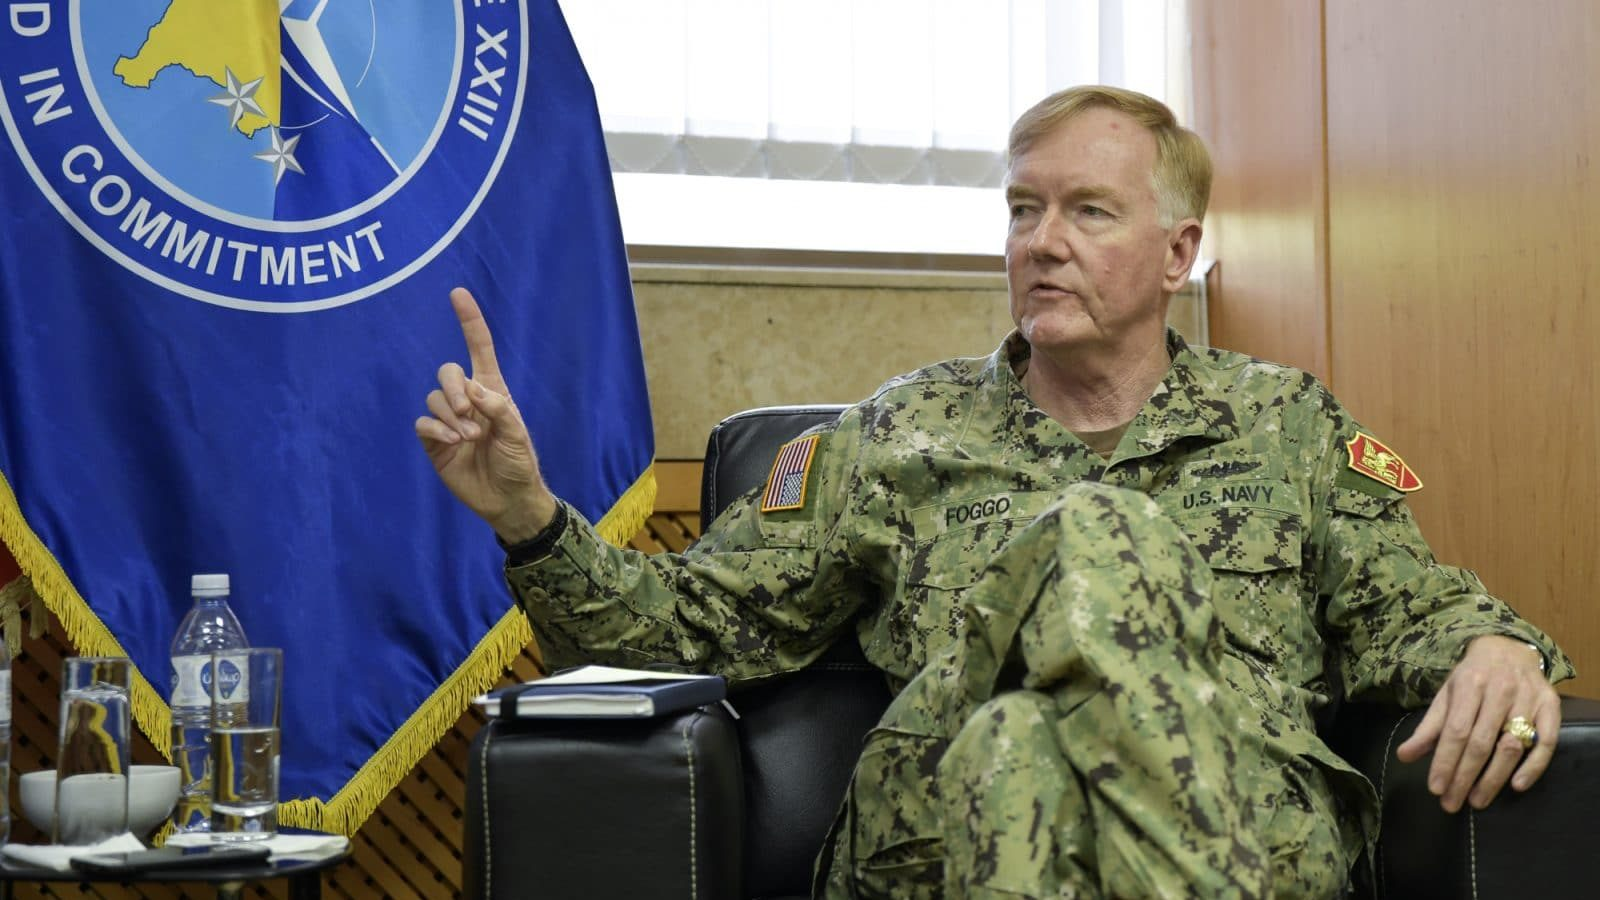 NATO Admiral: Compromise Needed for Kosovo-Serbia Deal | Balkan Insight